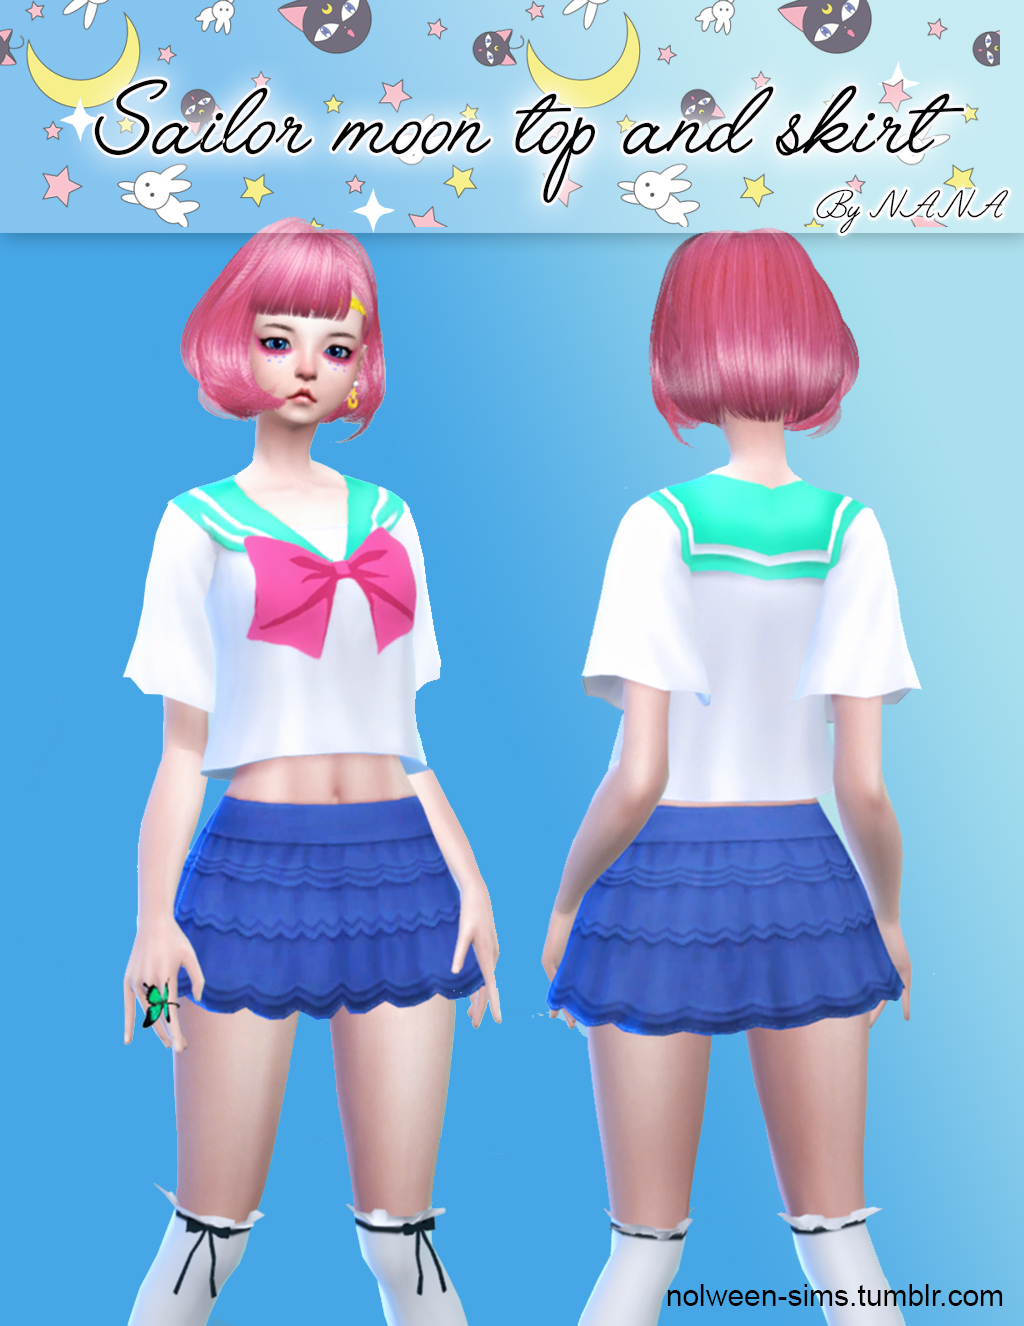 Sailor Moon Top and Skirt by Nana